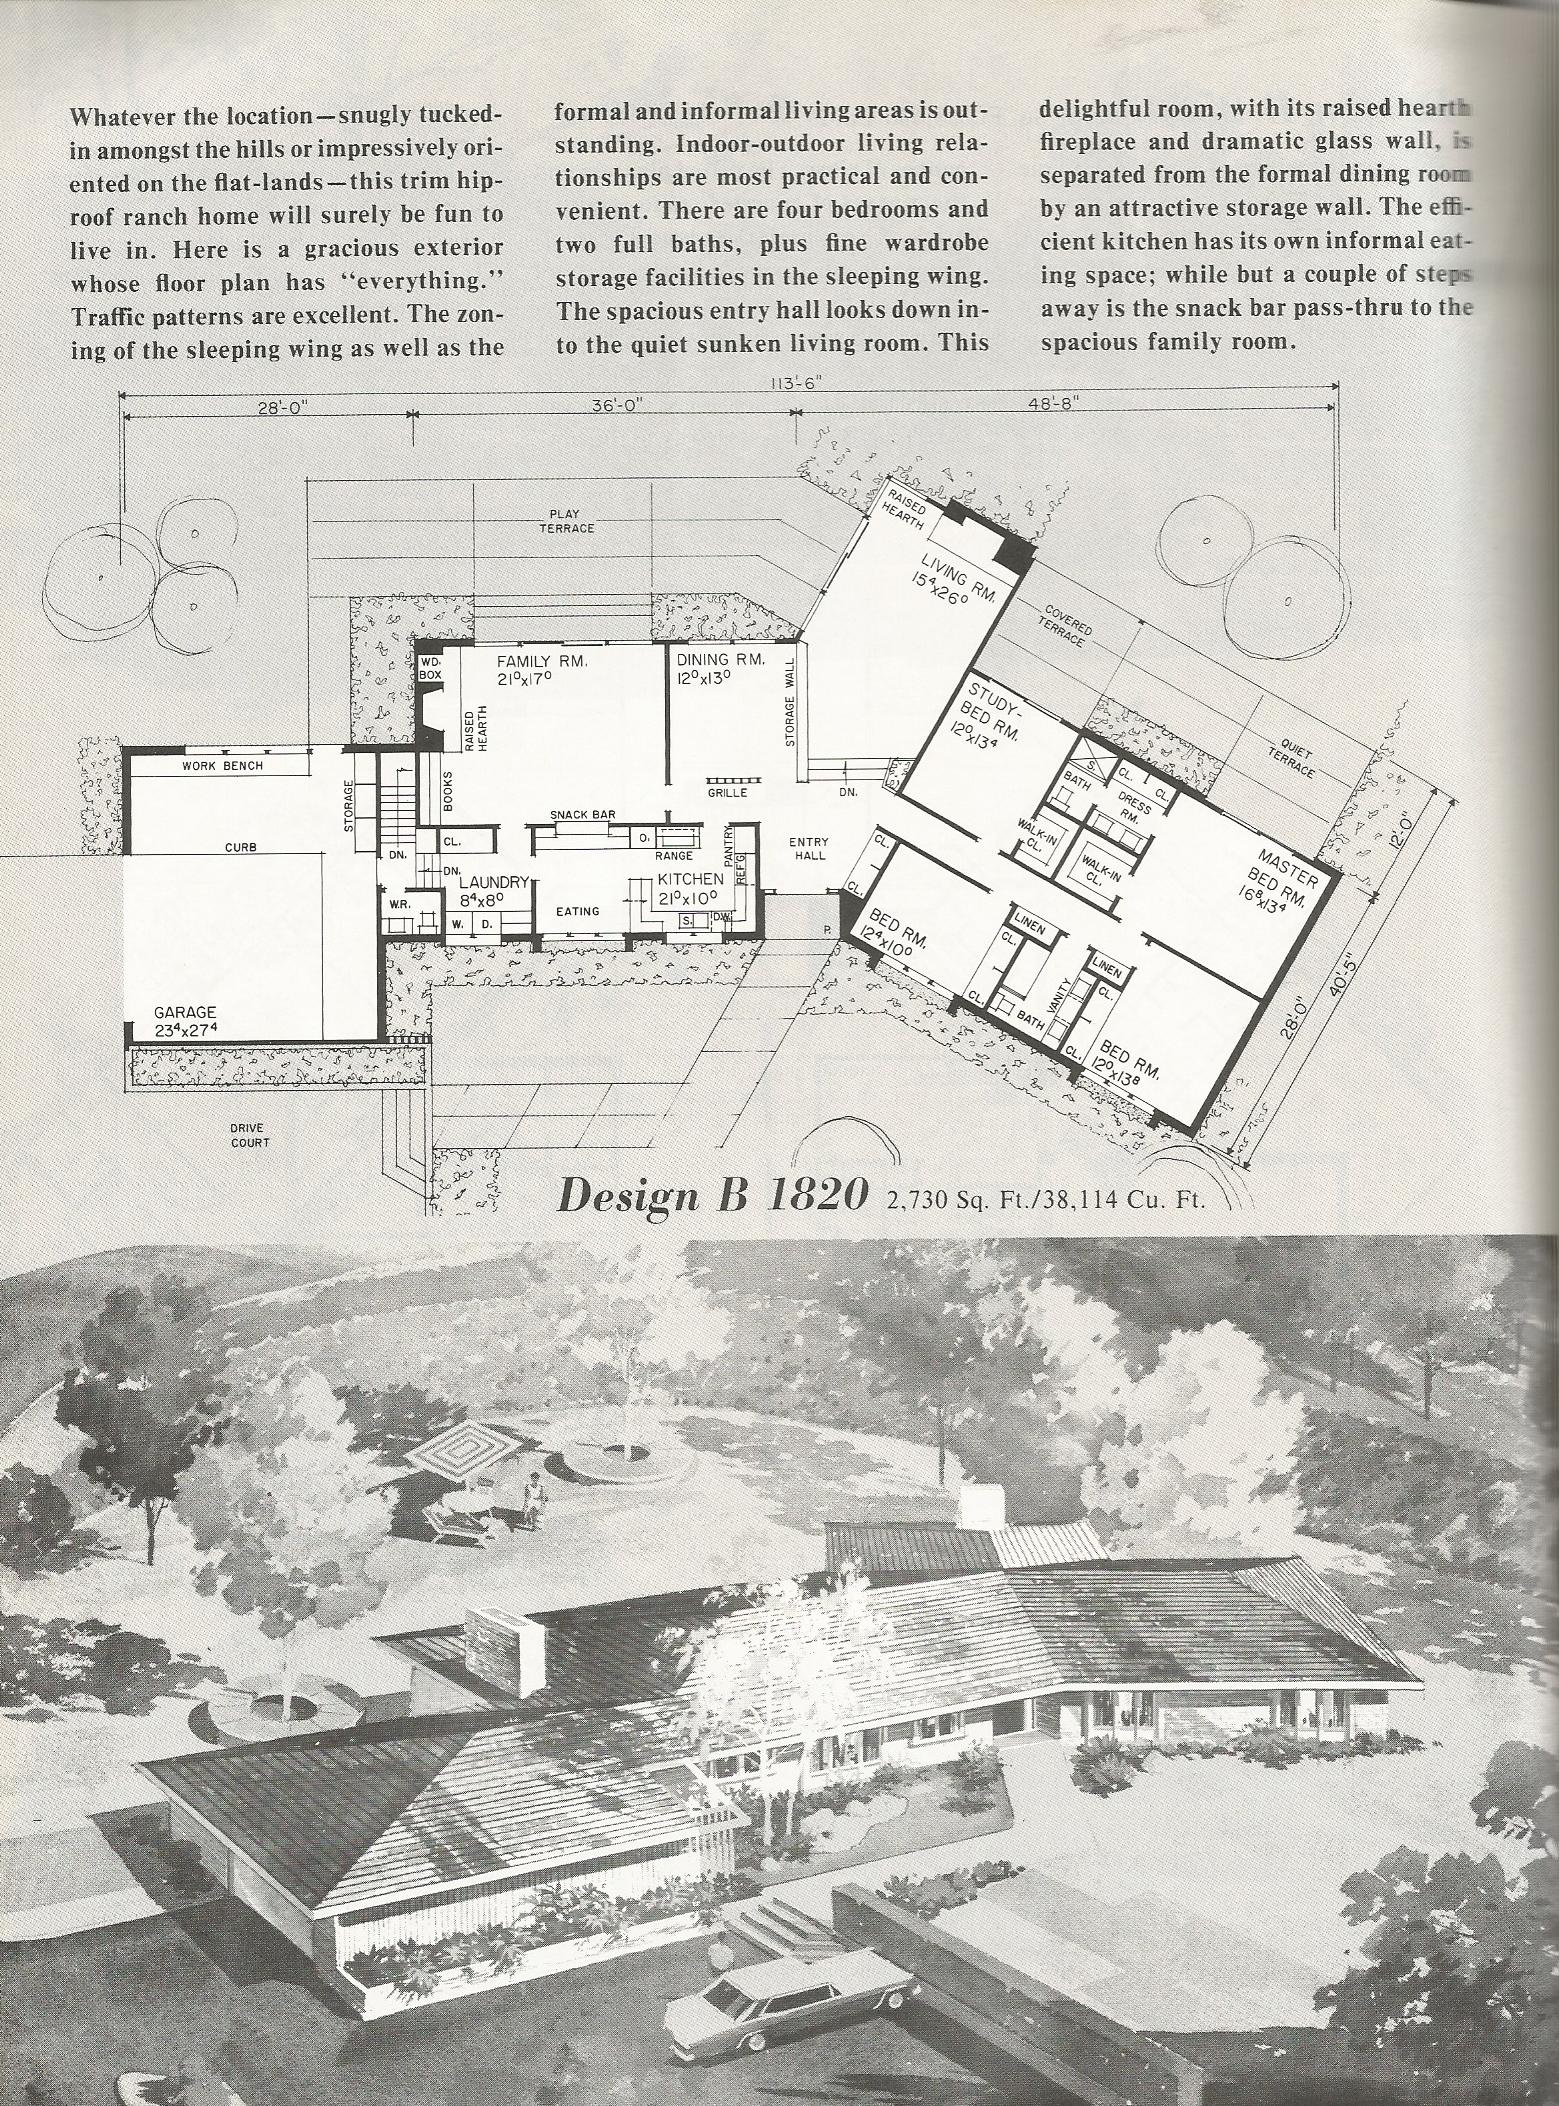 Vintage house plans 1820 antique alter ego for Vintage home plans